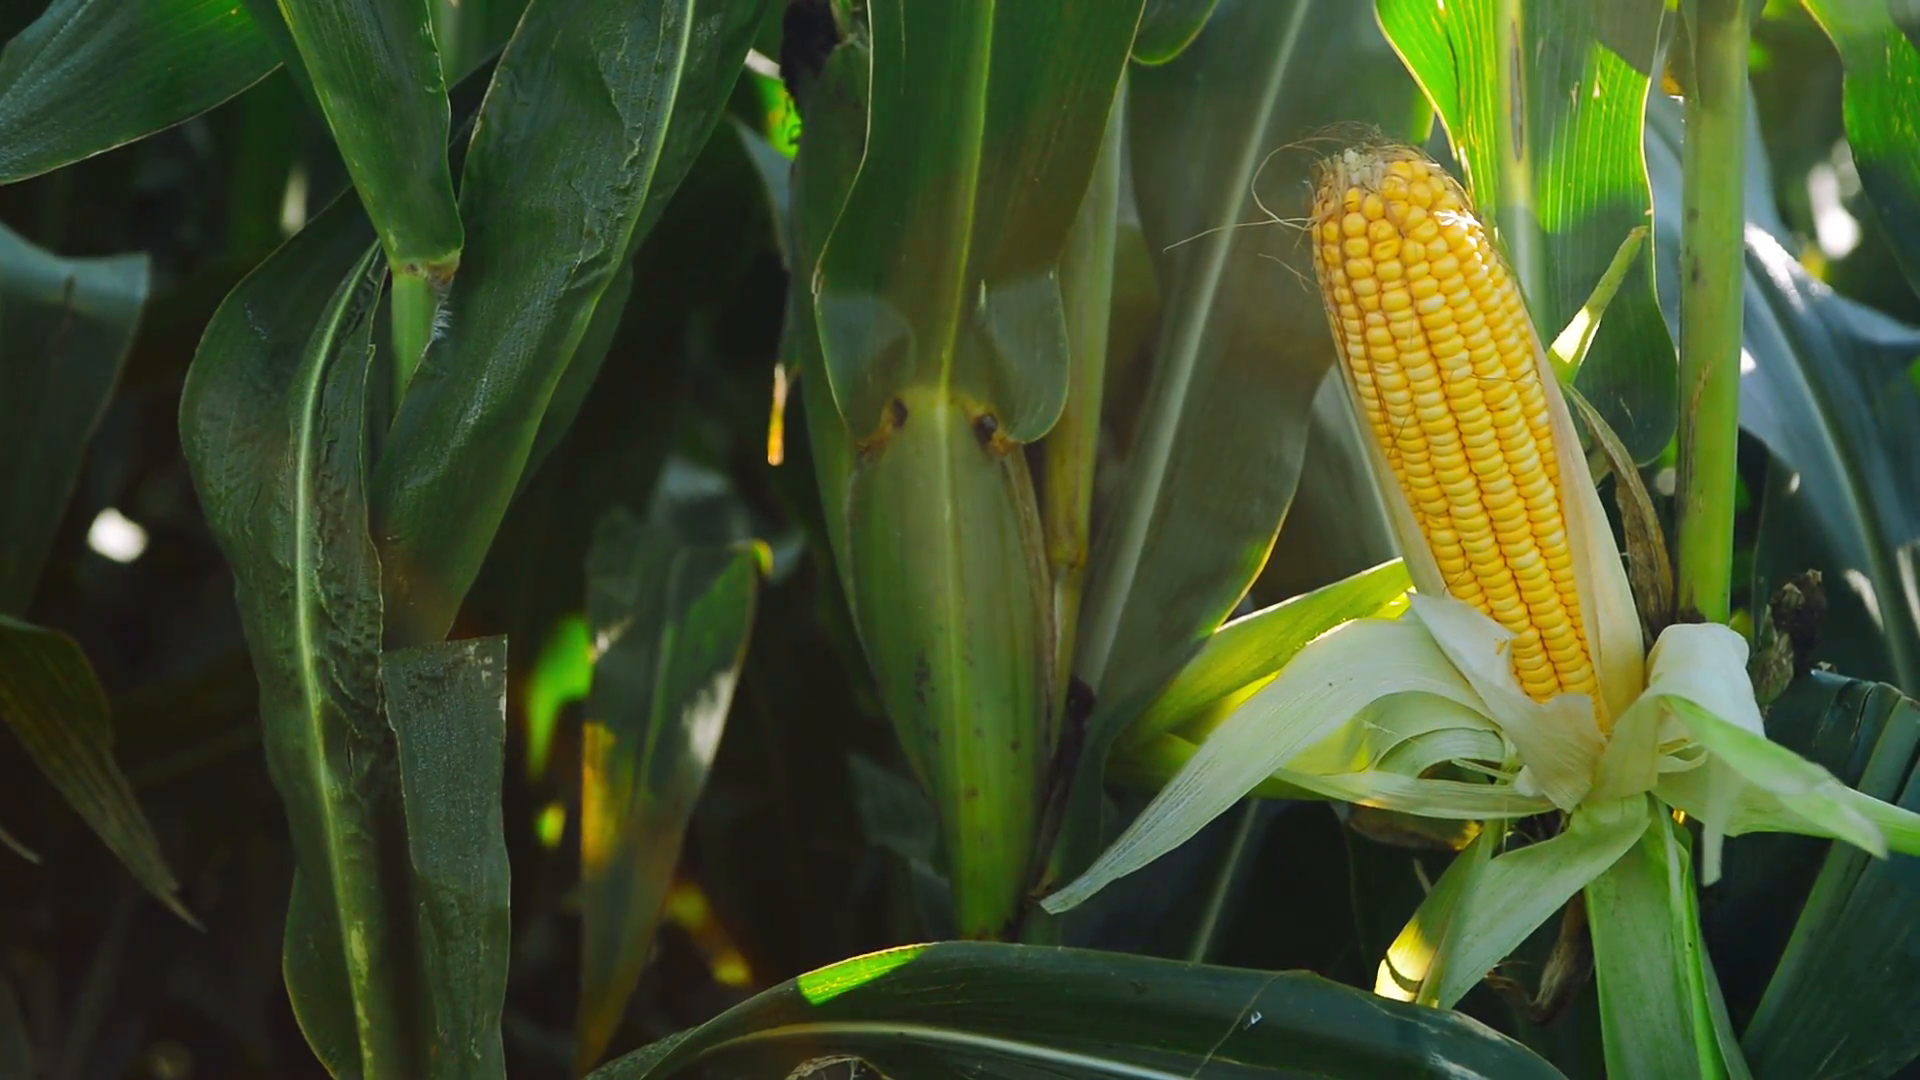 Corn Wave Analysis – 23 April, 2019